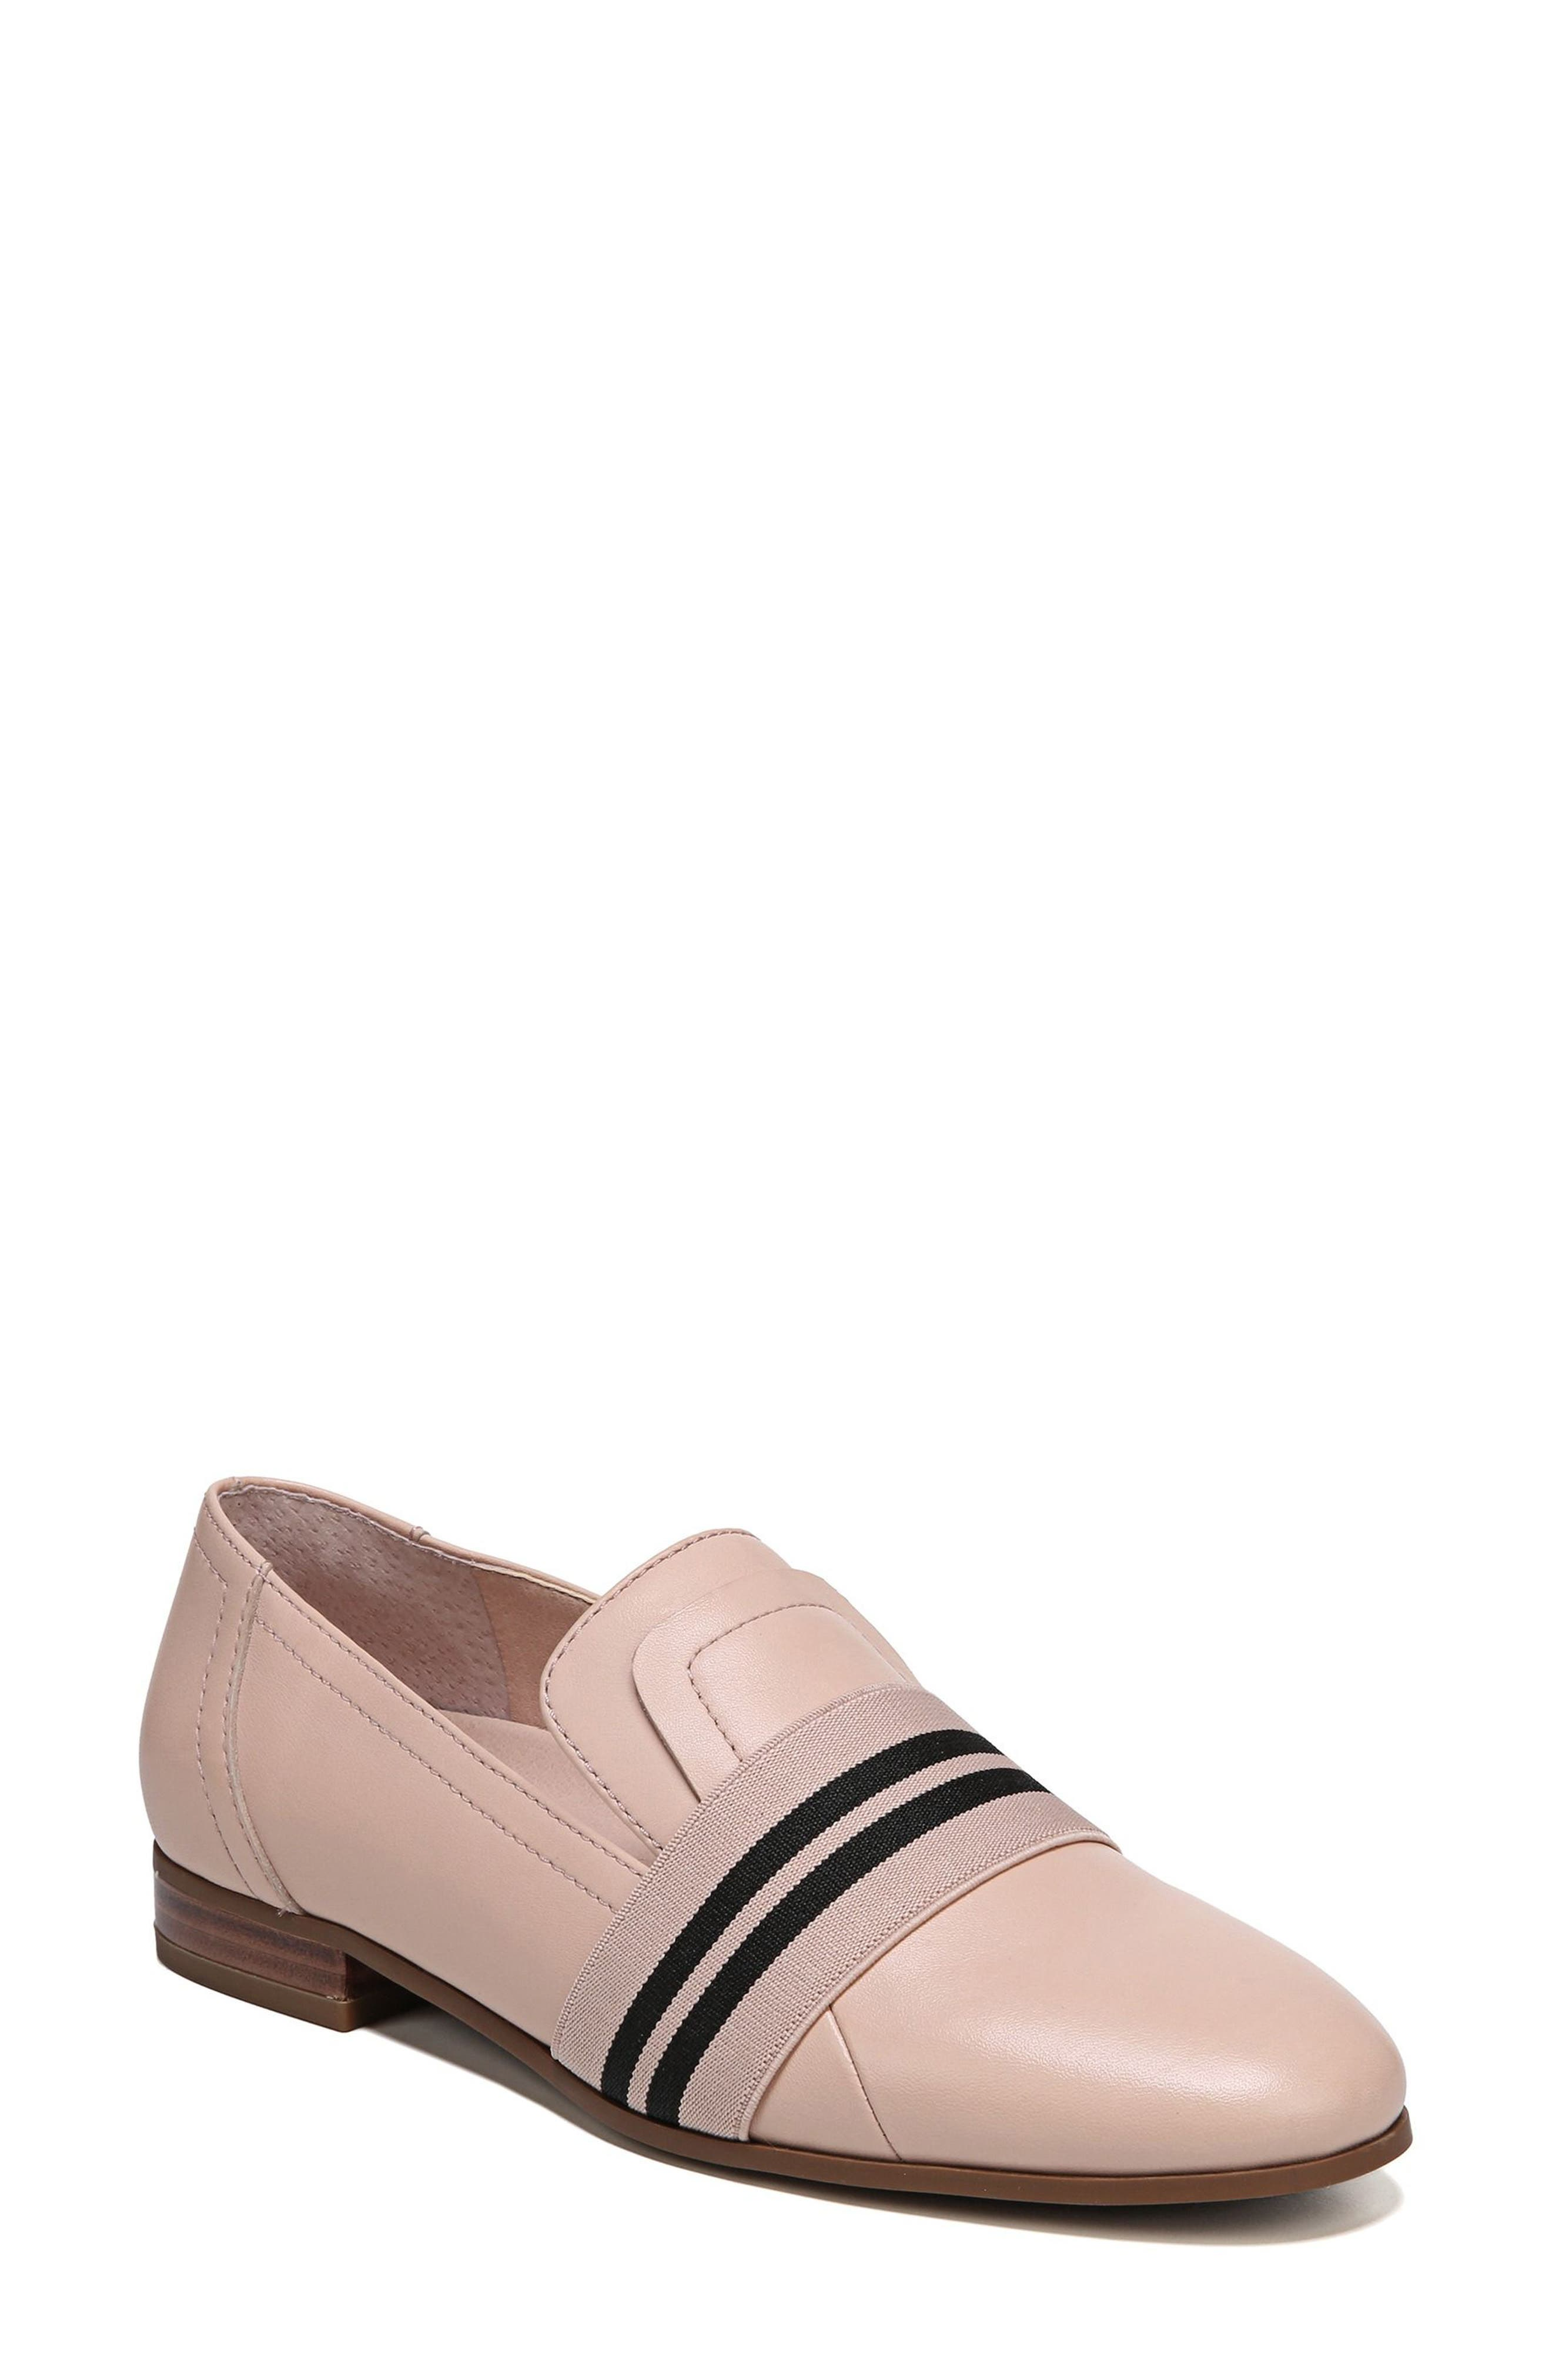 Odyssey Loafer,                         Main,                         color, Blush Leather